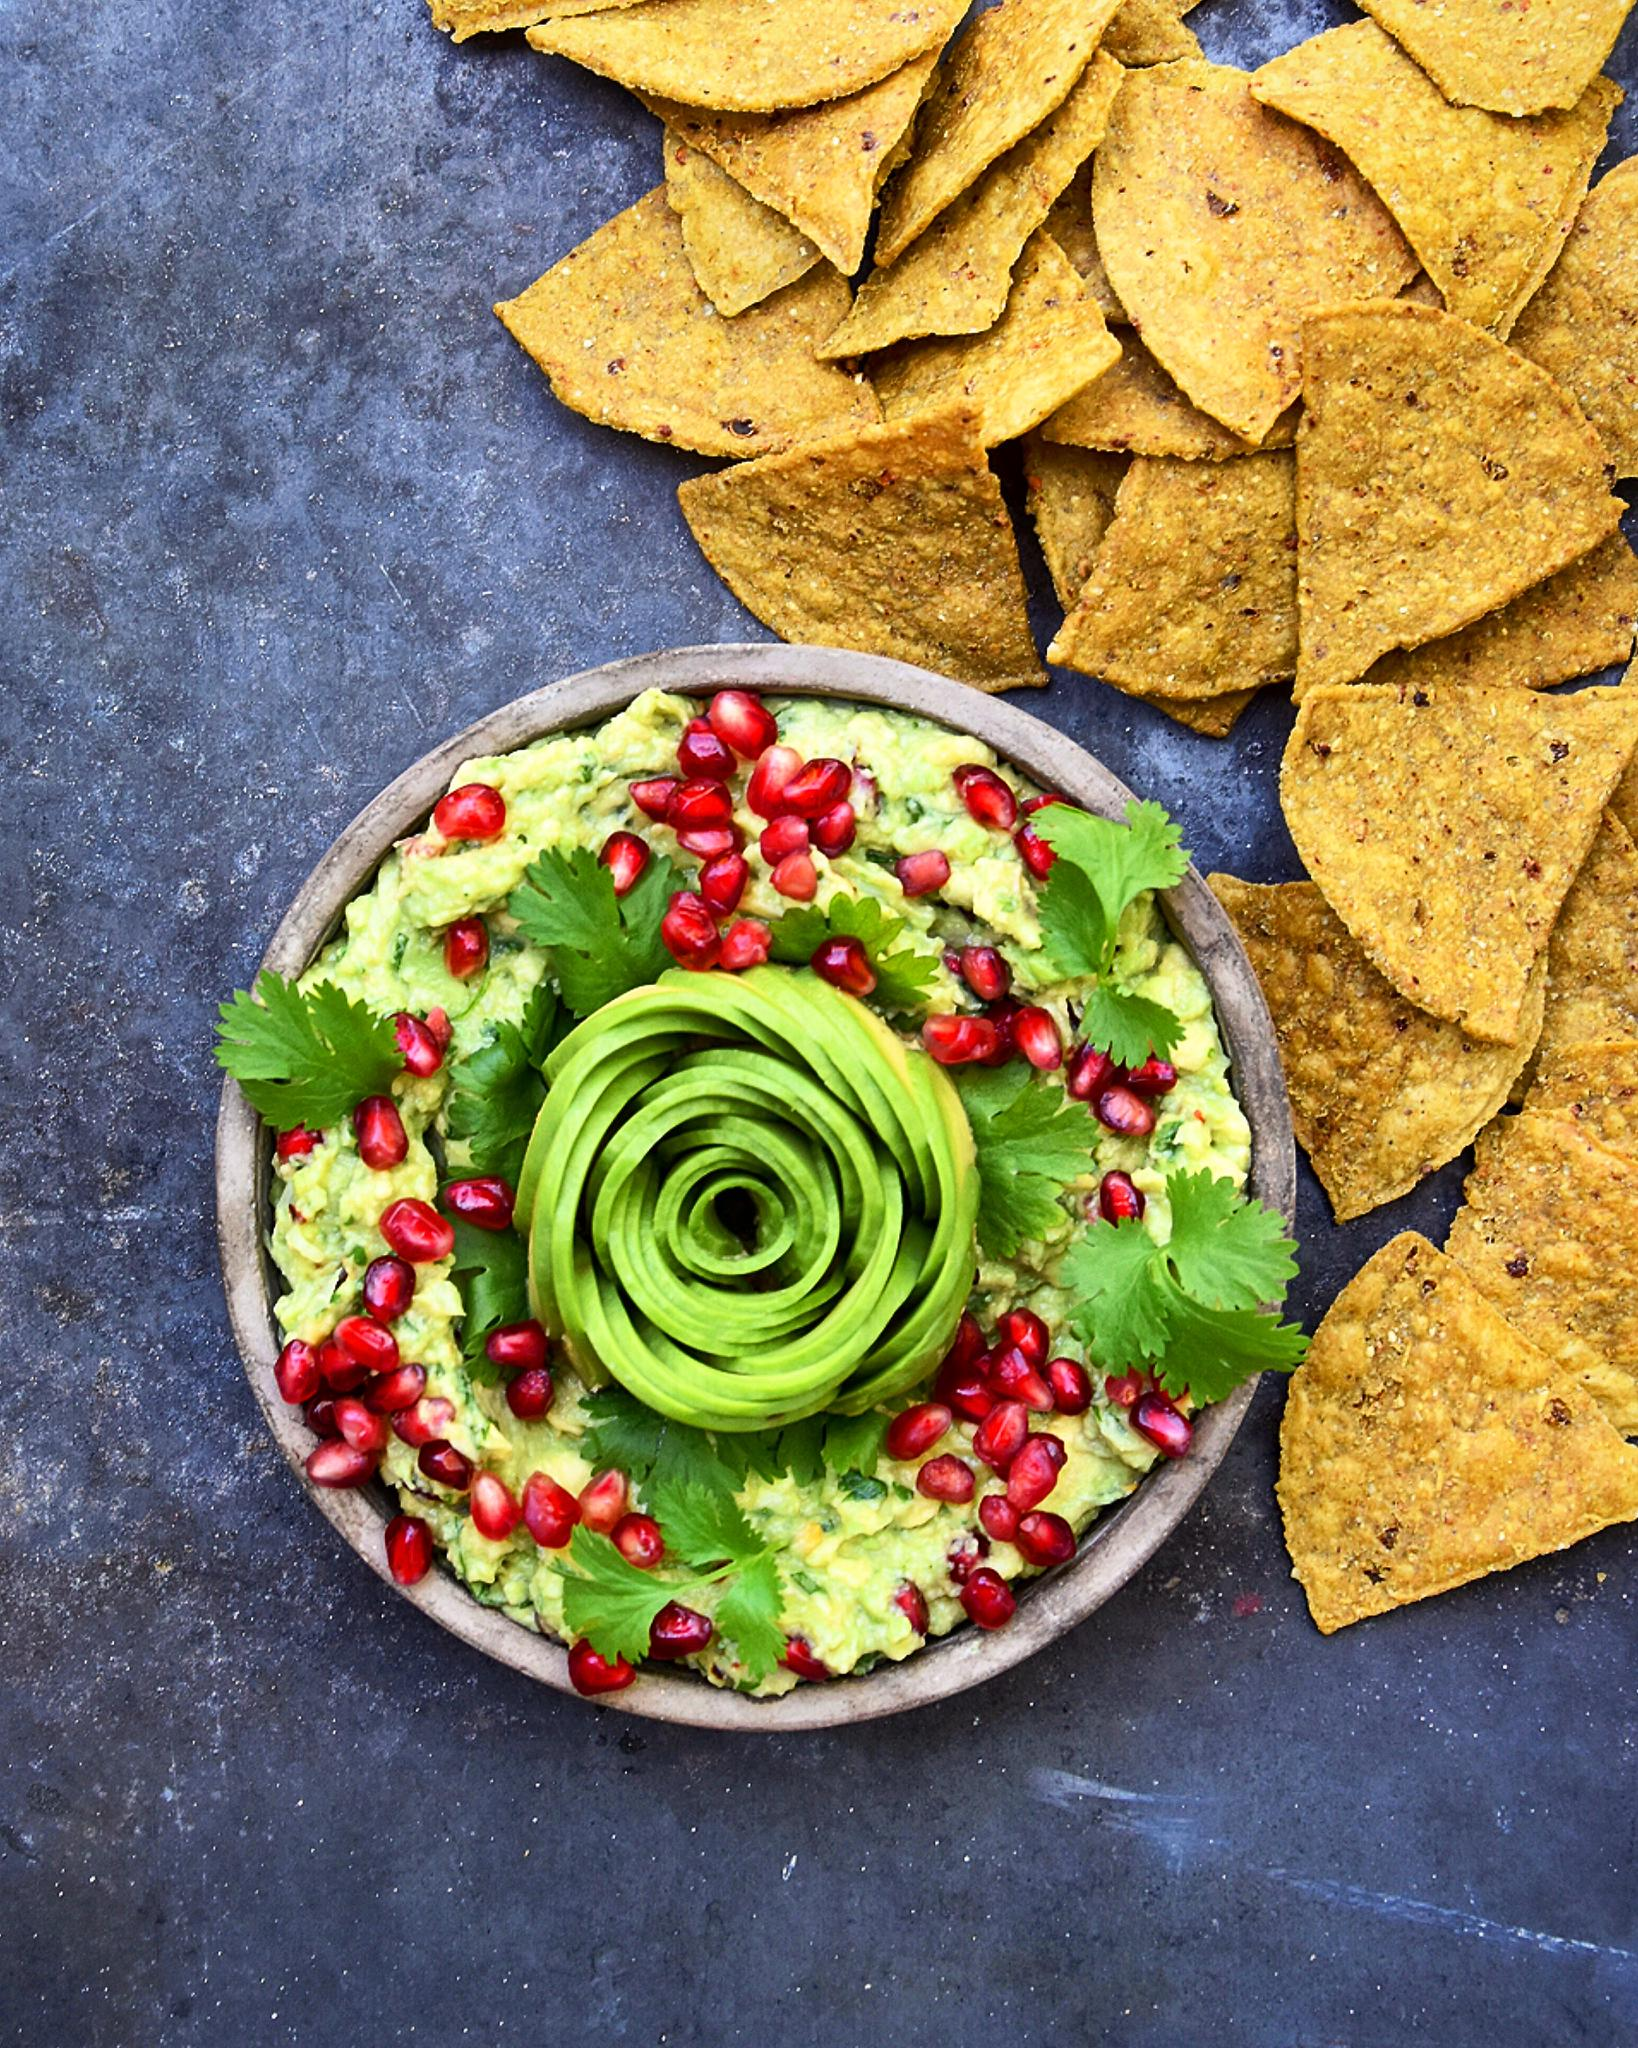 Pomegranate and Pickled Ginger Guacamole